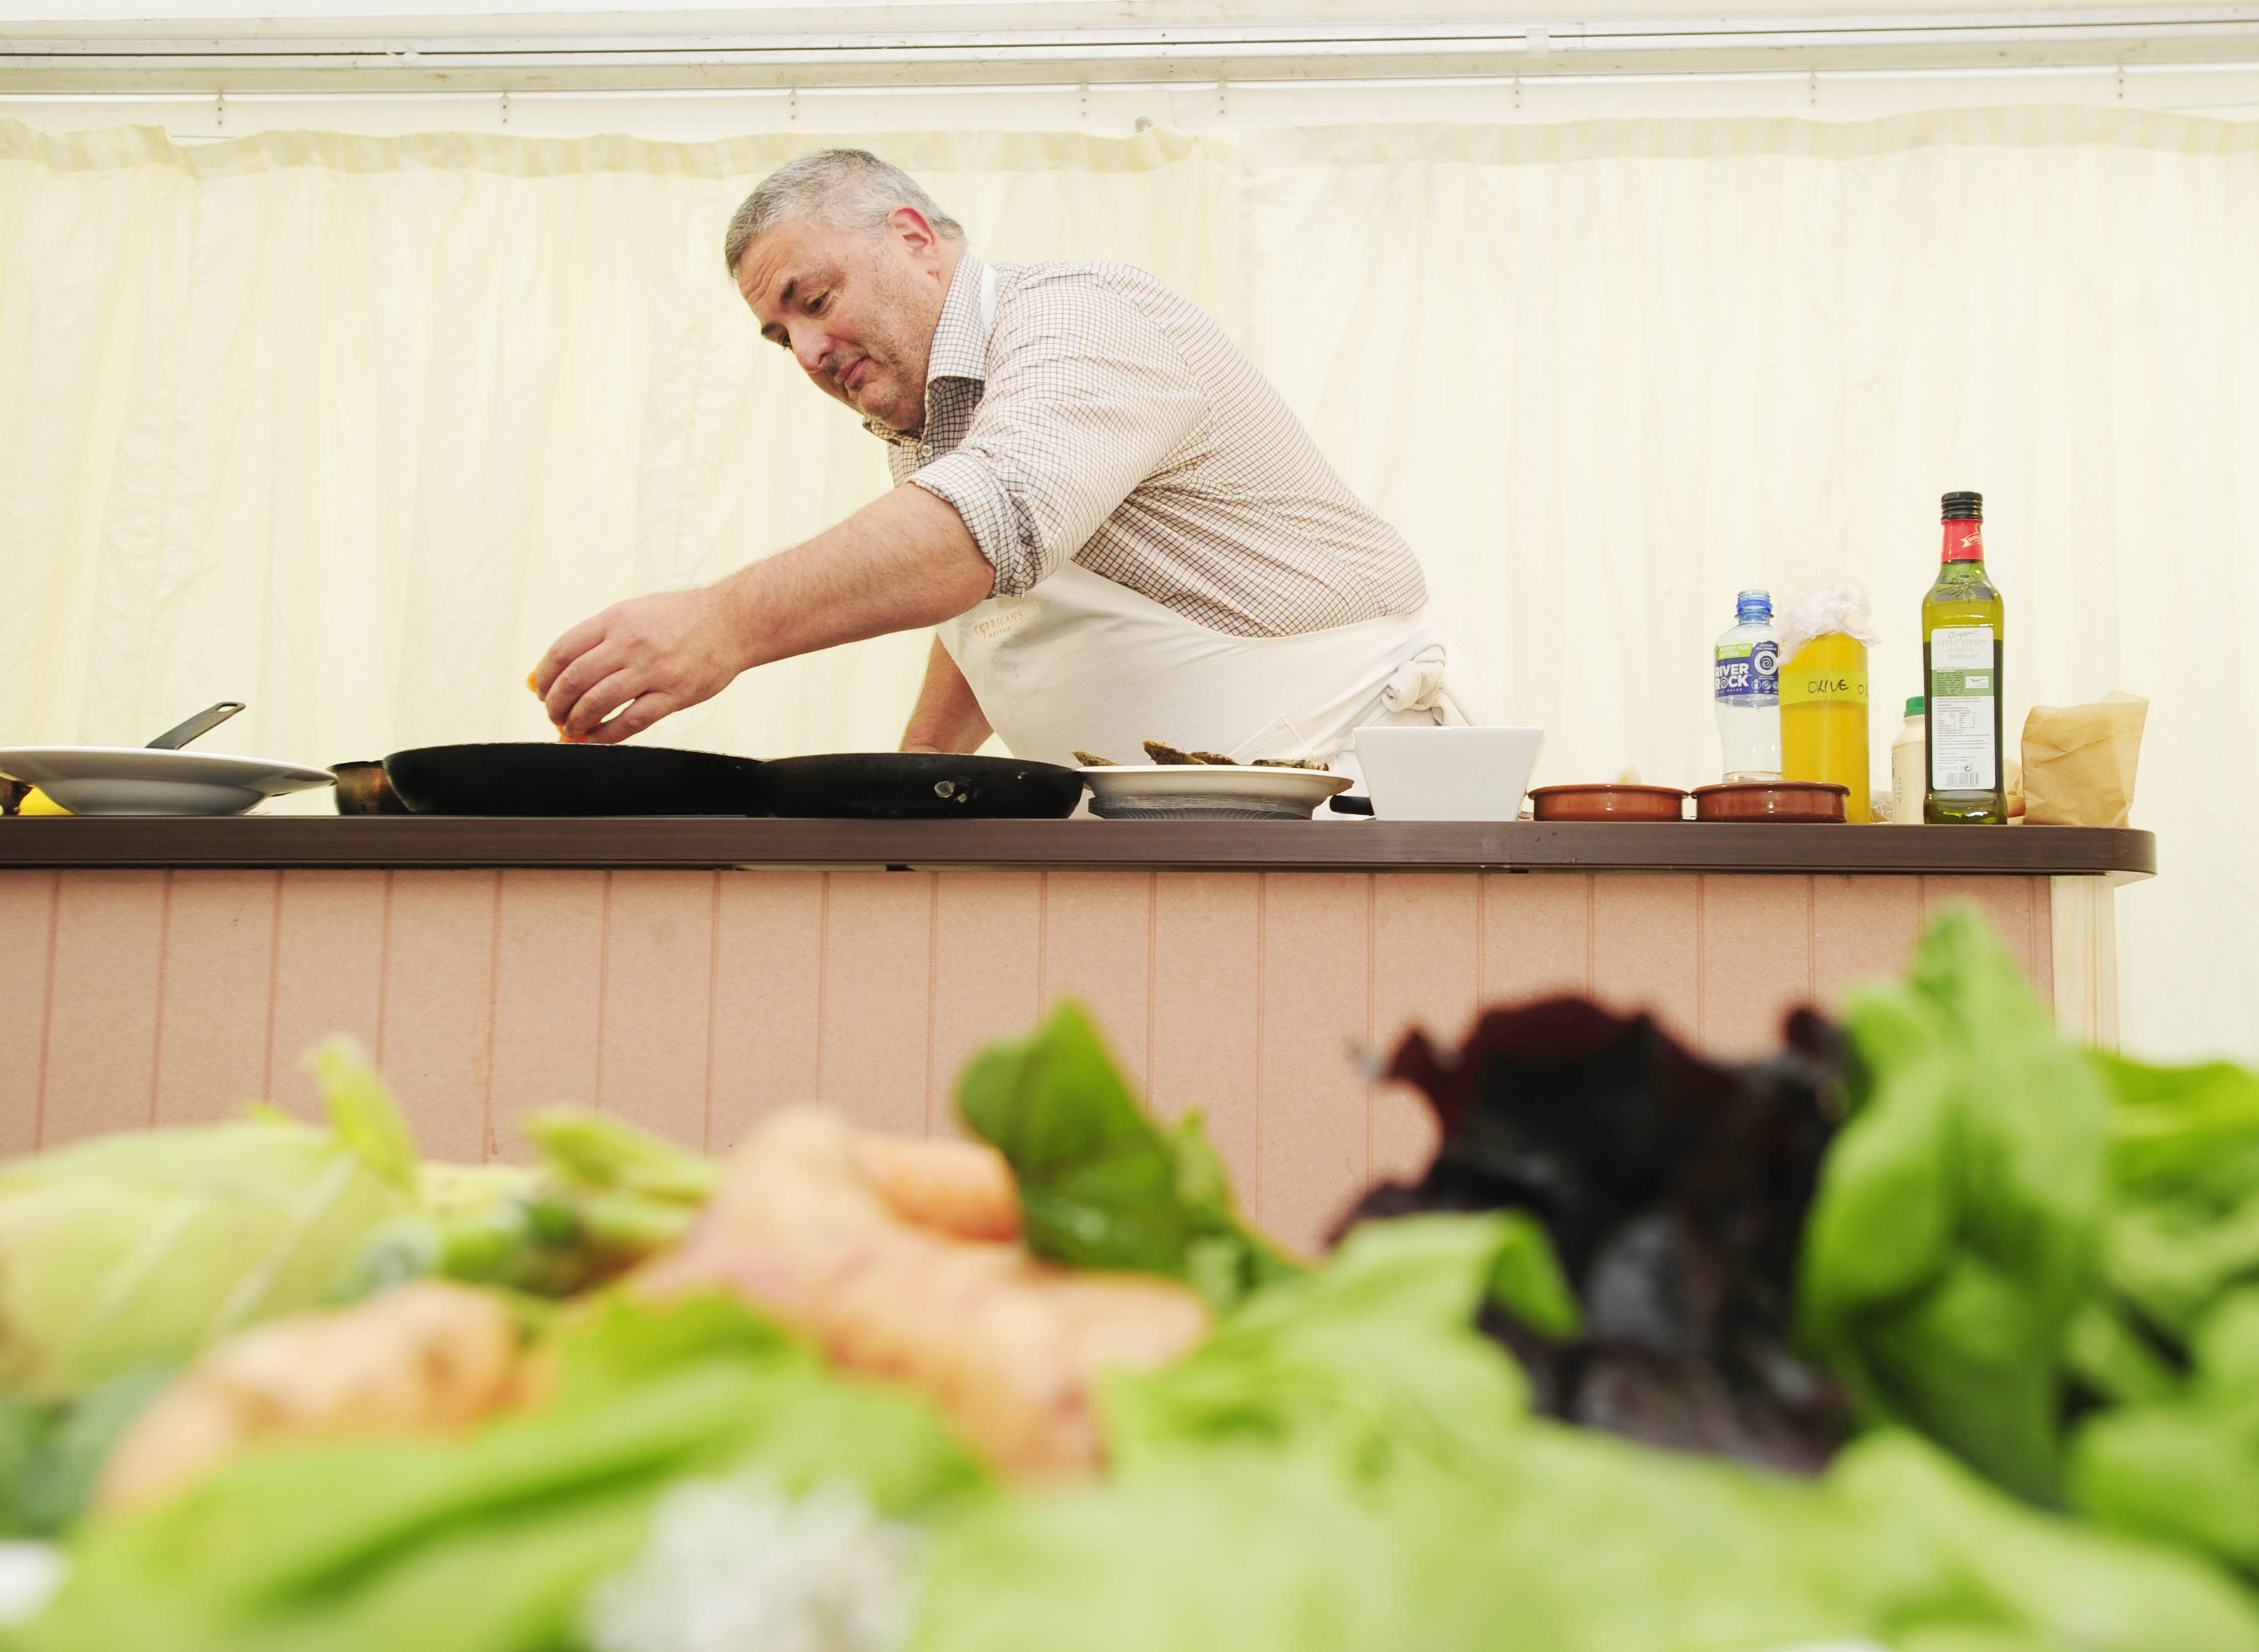 Richard Corrigan, a world renowned chef, busy creating in the demo kitchen